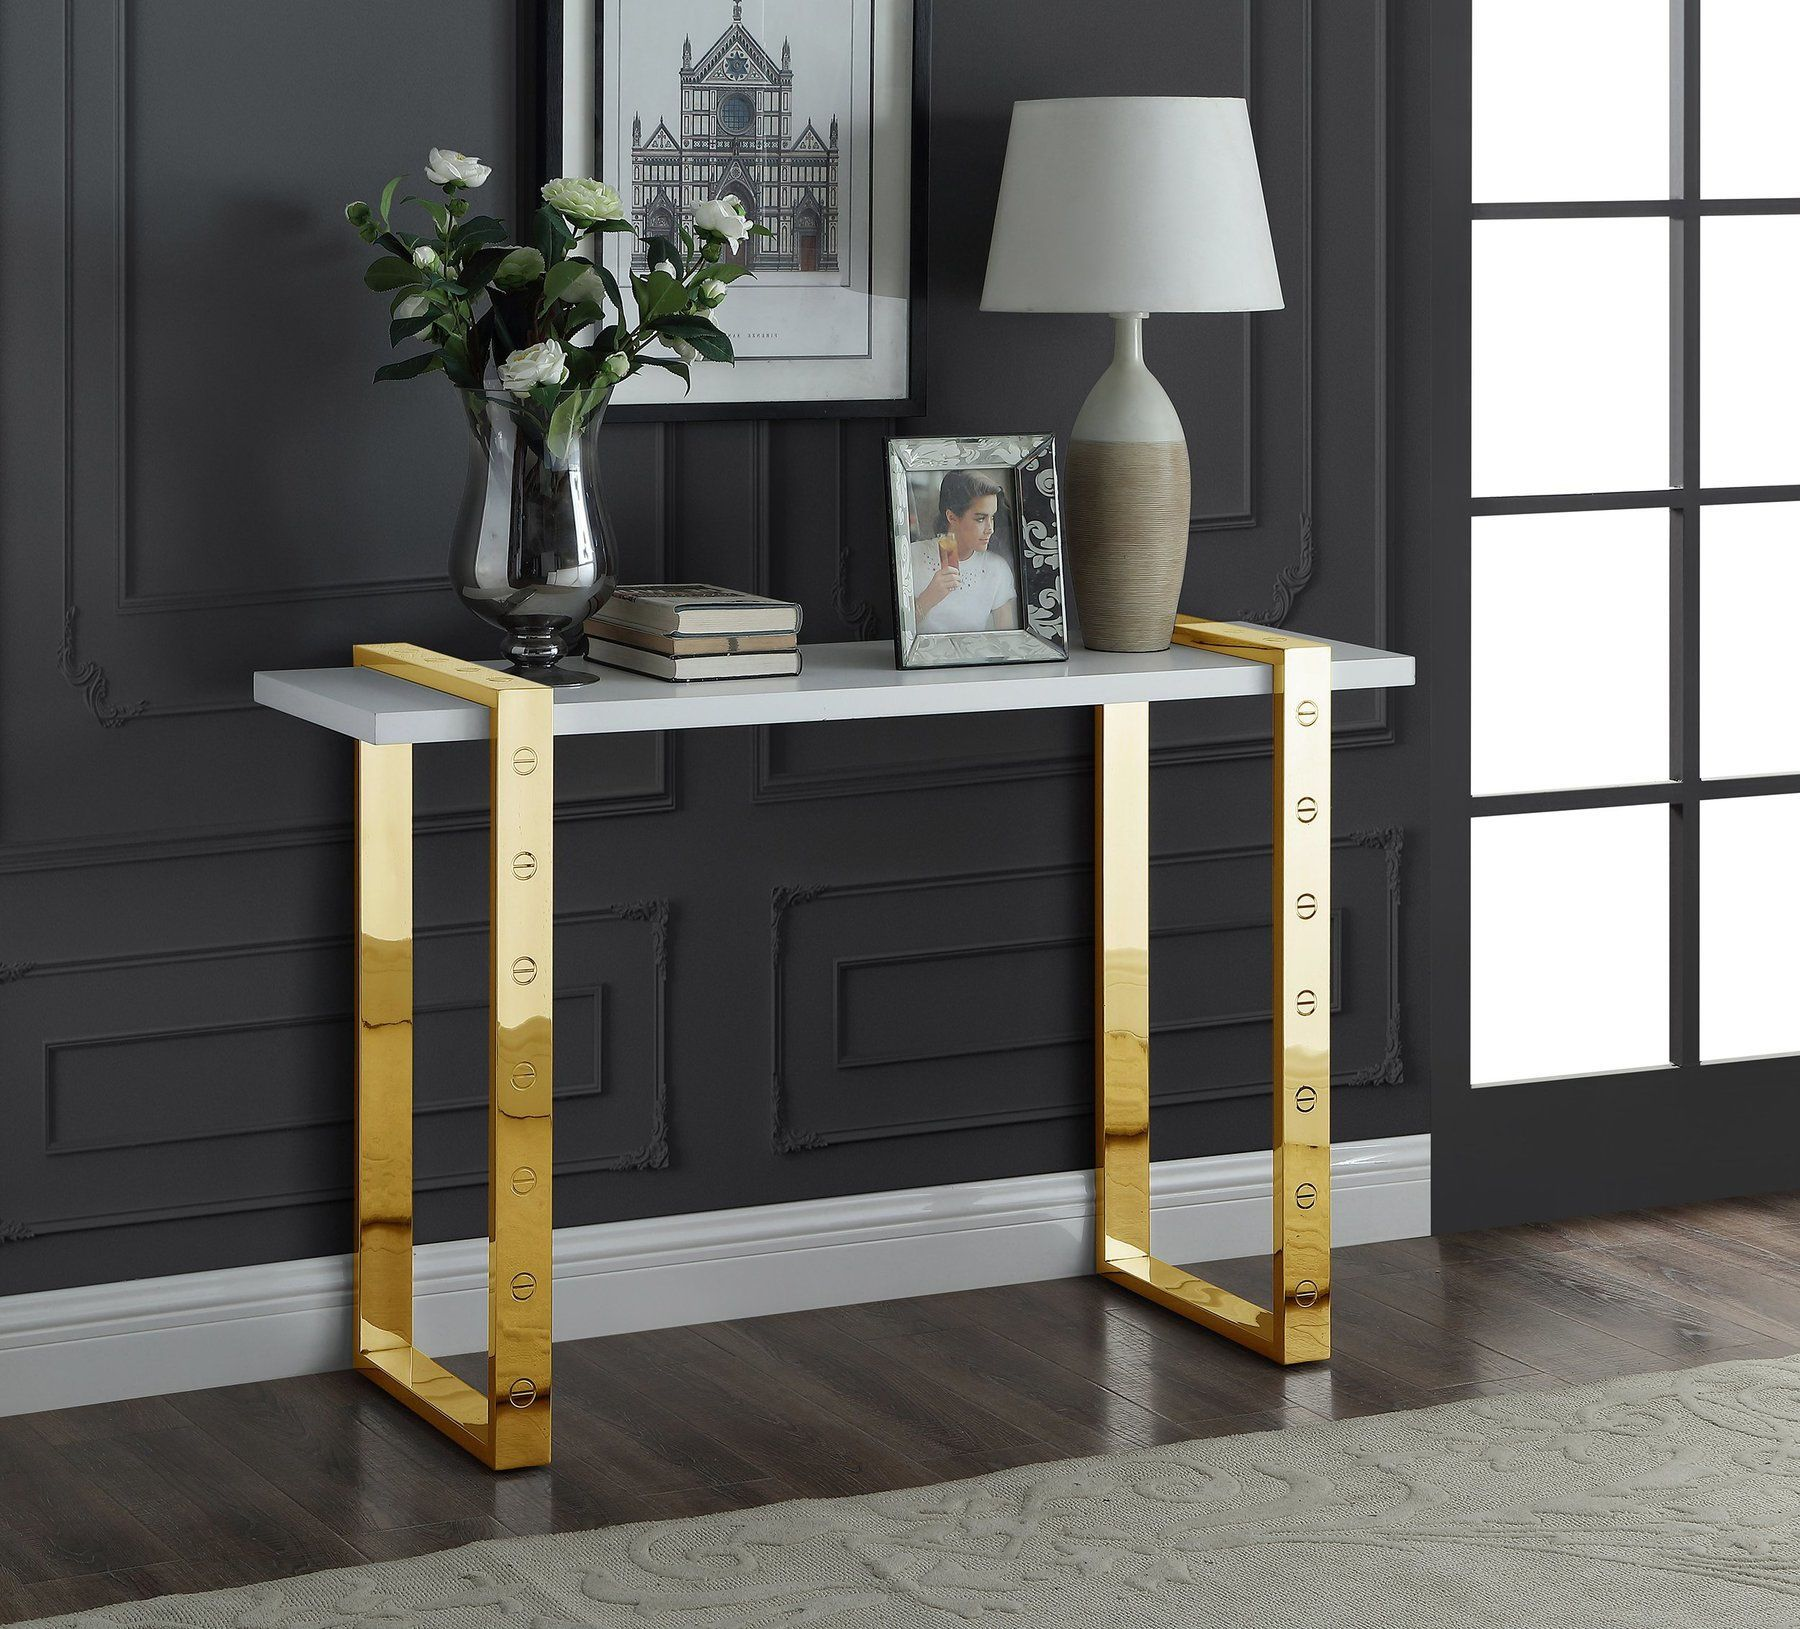 Amore Gold Coffee Table Furniture, Contemporary coffee